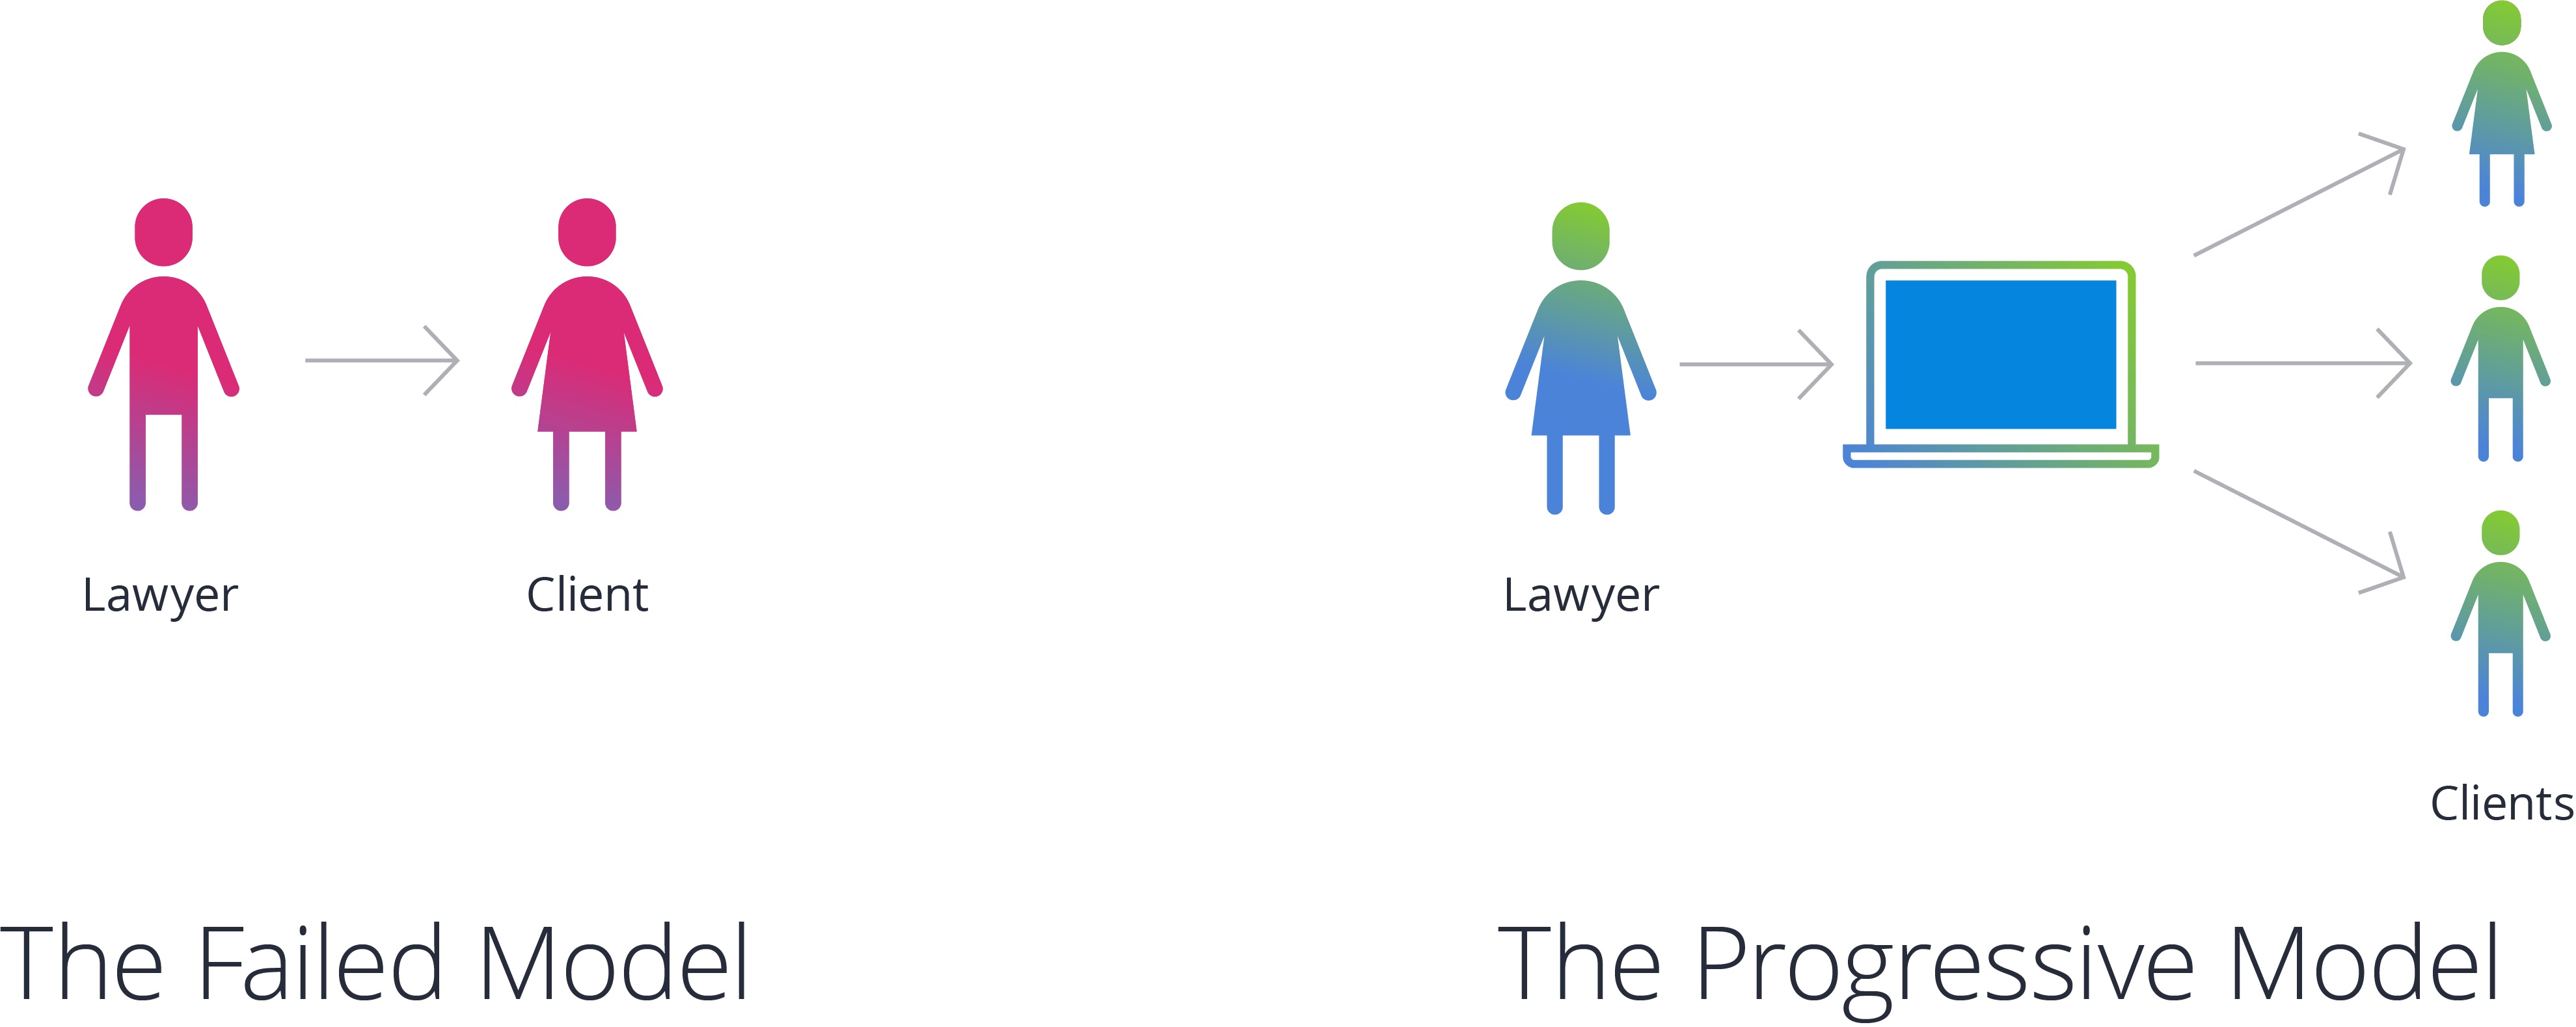 Matter management is for law firms Blog Failed Prograssive Model